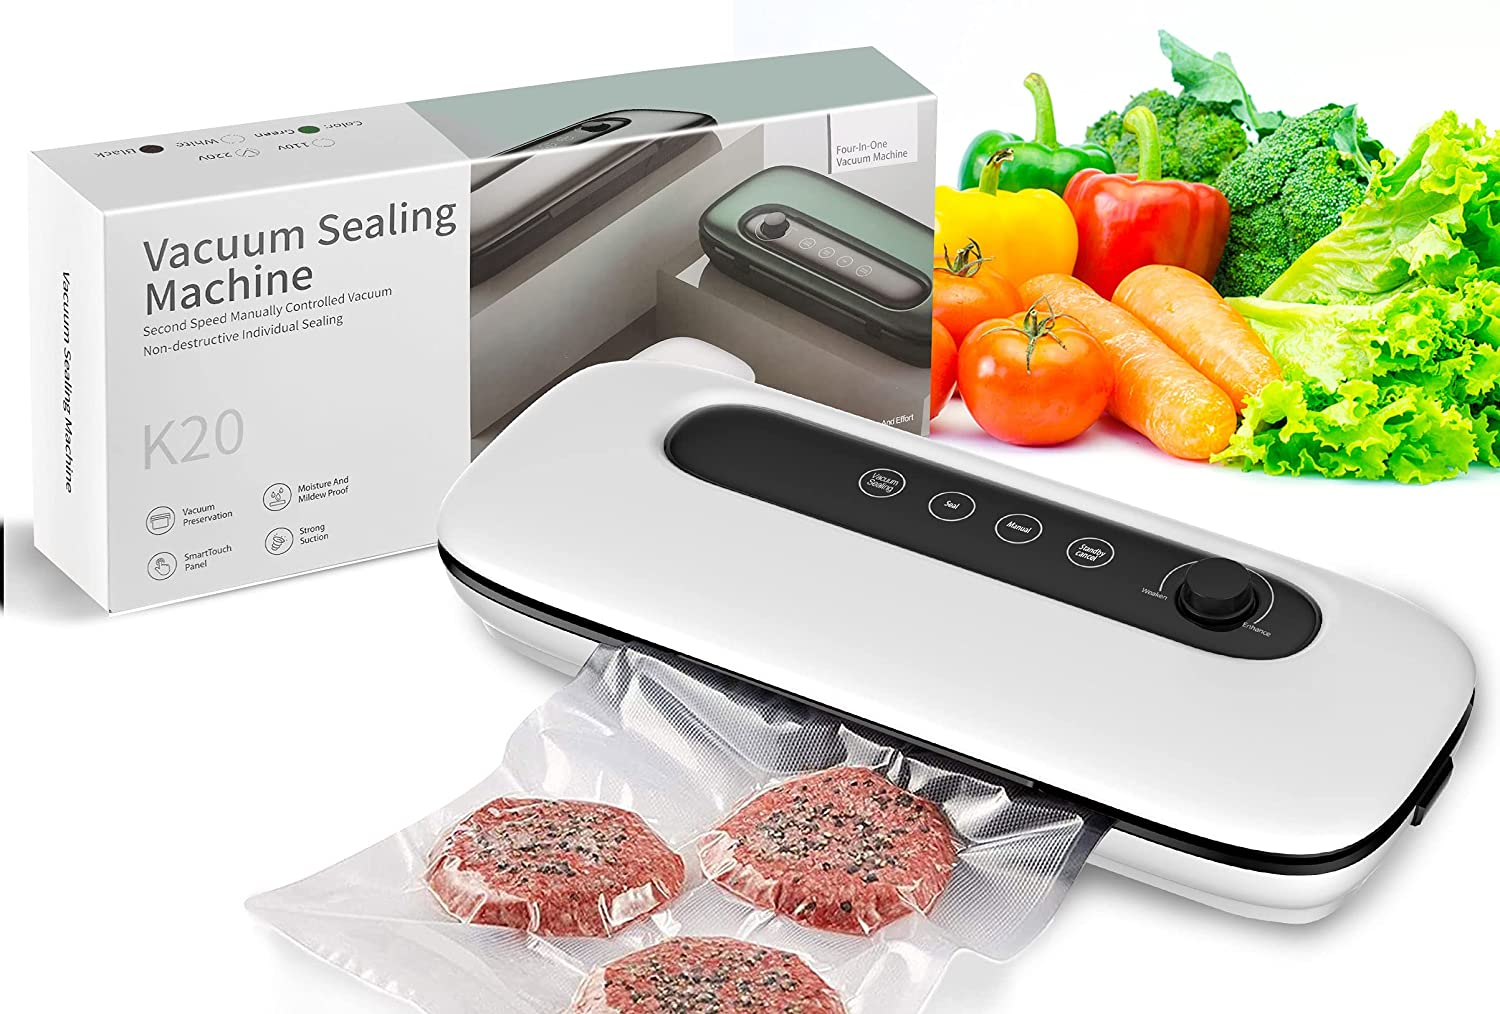 Vacuum Sealer Machine, Automatic Vacuum Air Sealing System For Food Preservation,60KPA Strong Suction,Dry&Moist Food Modes(White)